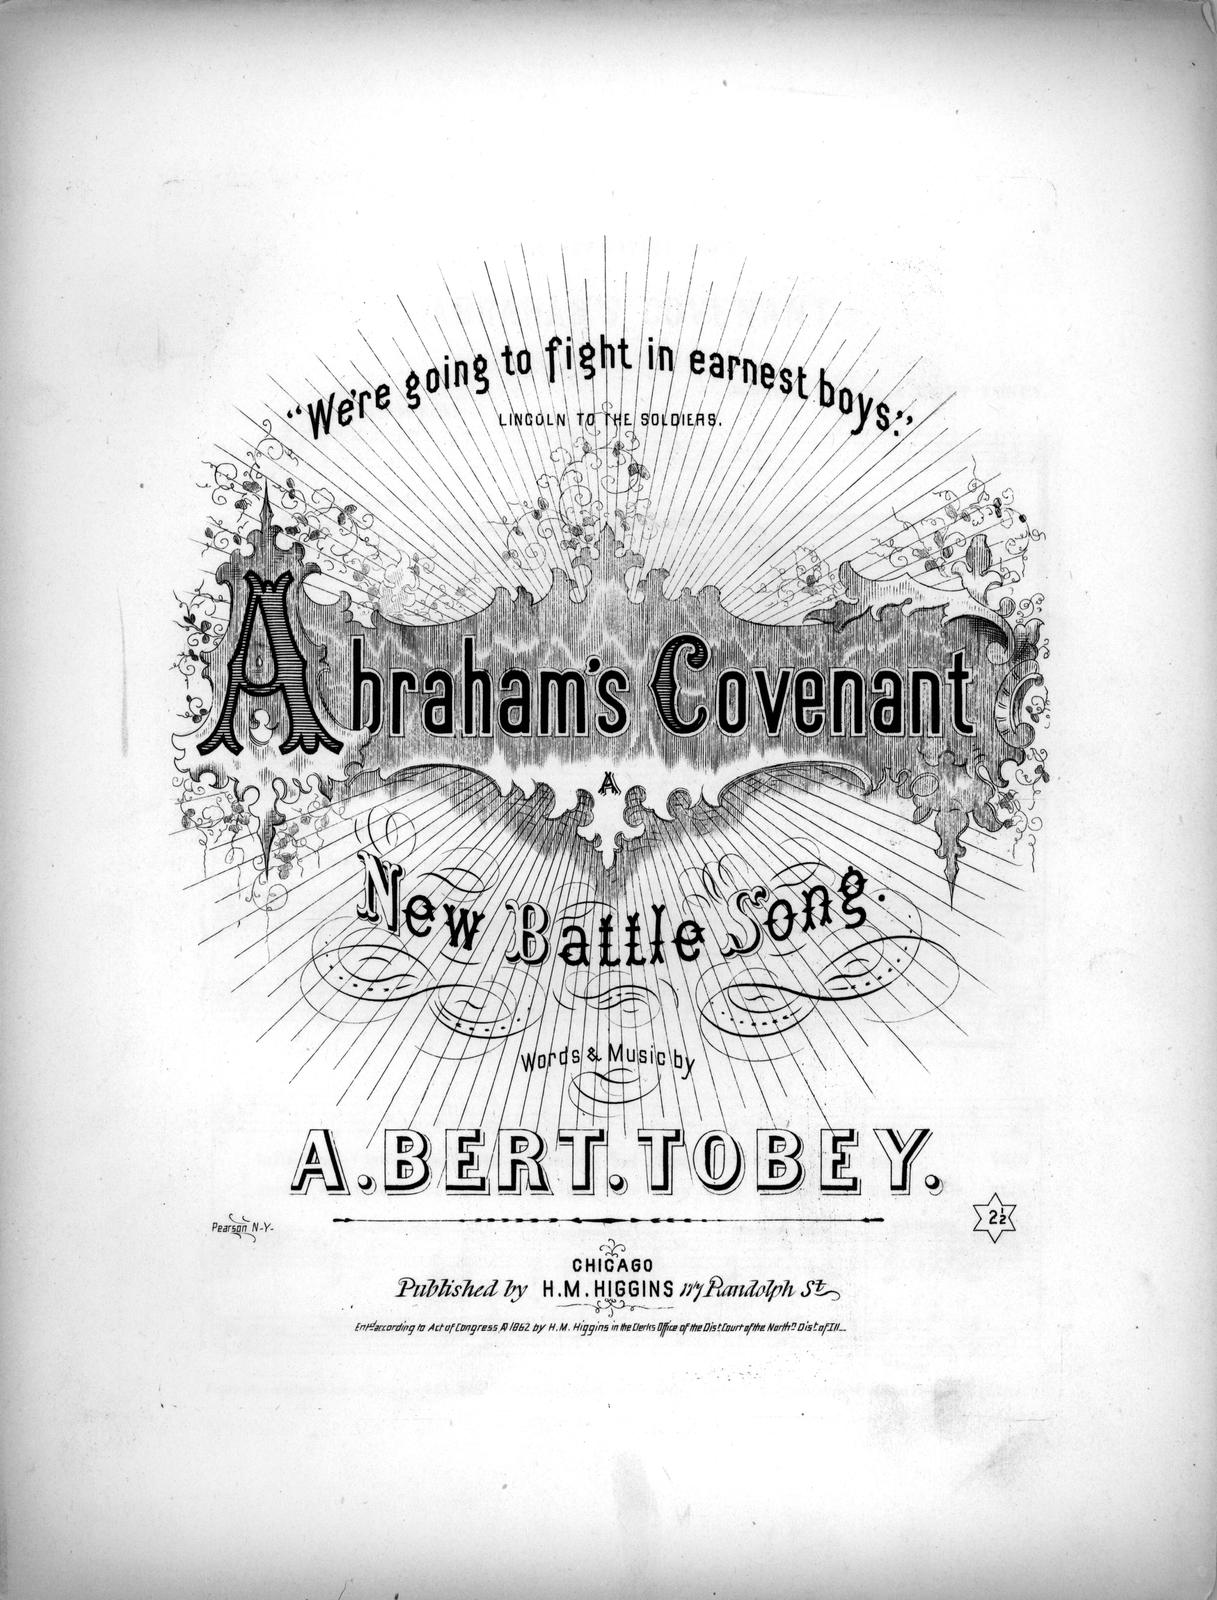 Abraham's covenant: a new battle song words & music by A. Bert. Tobey.